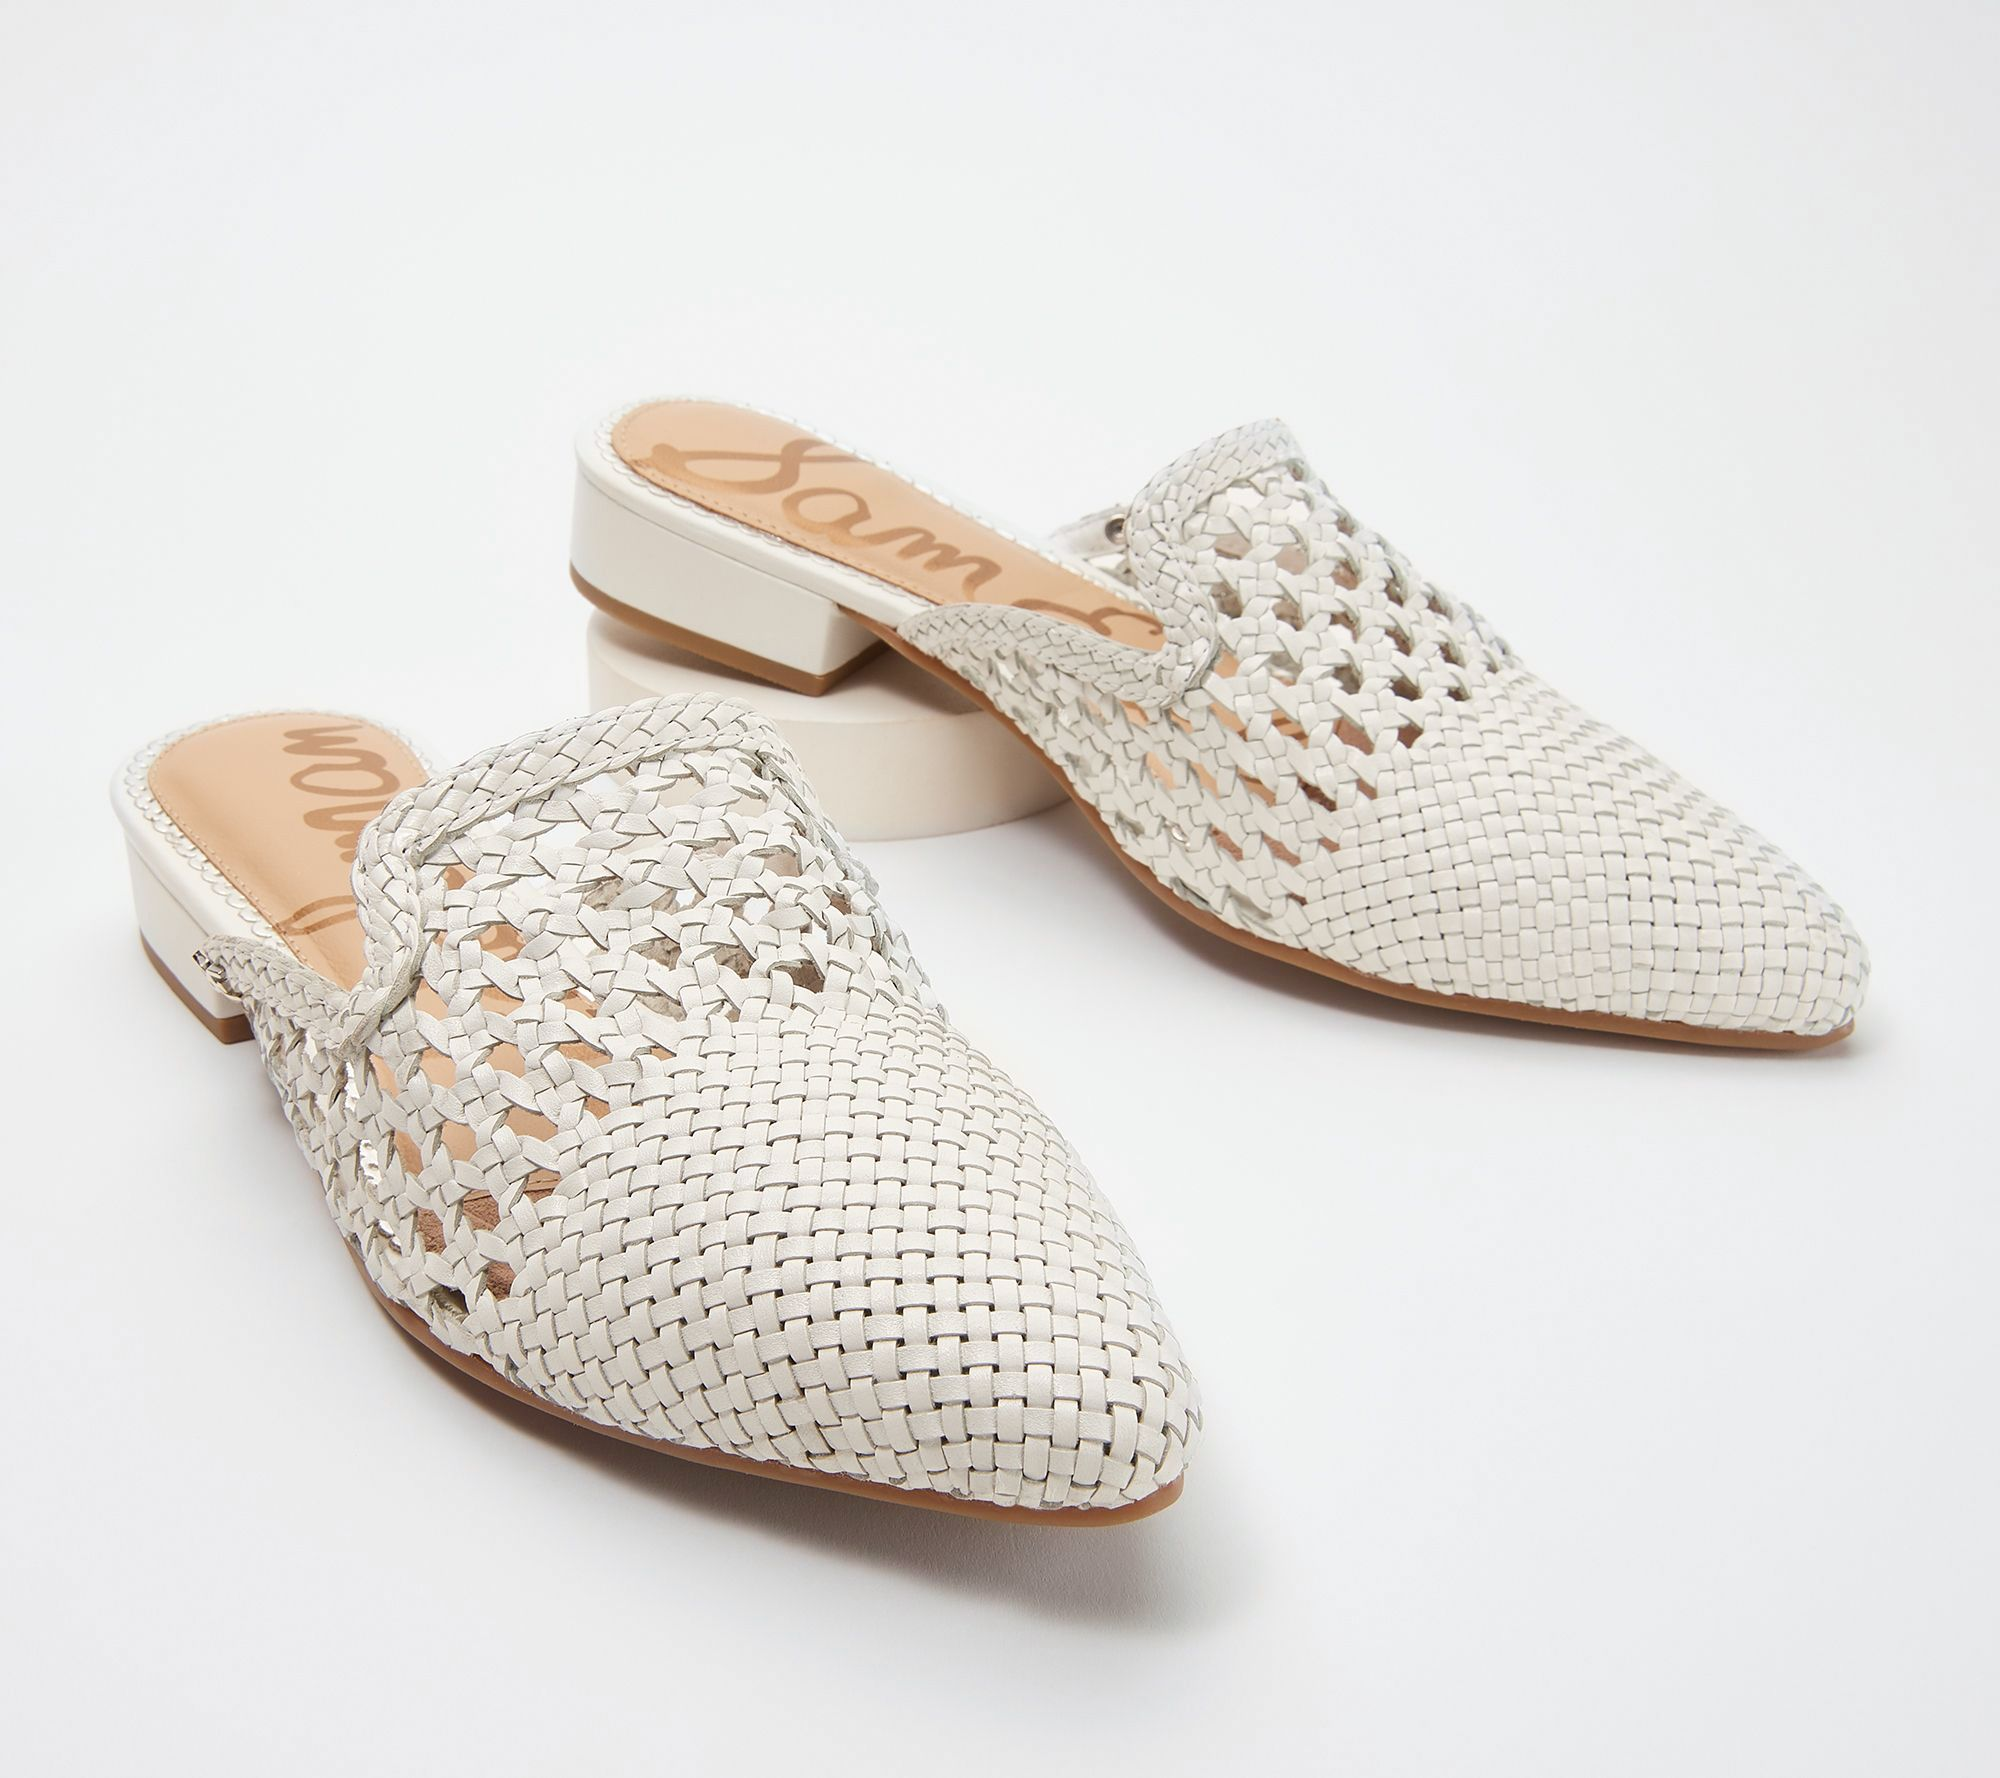 67821c1bb Sam Edelman Woven Leather Mules - Clara - Page 1 — QVC.com